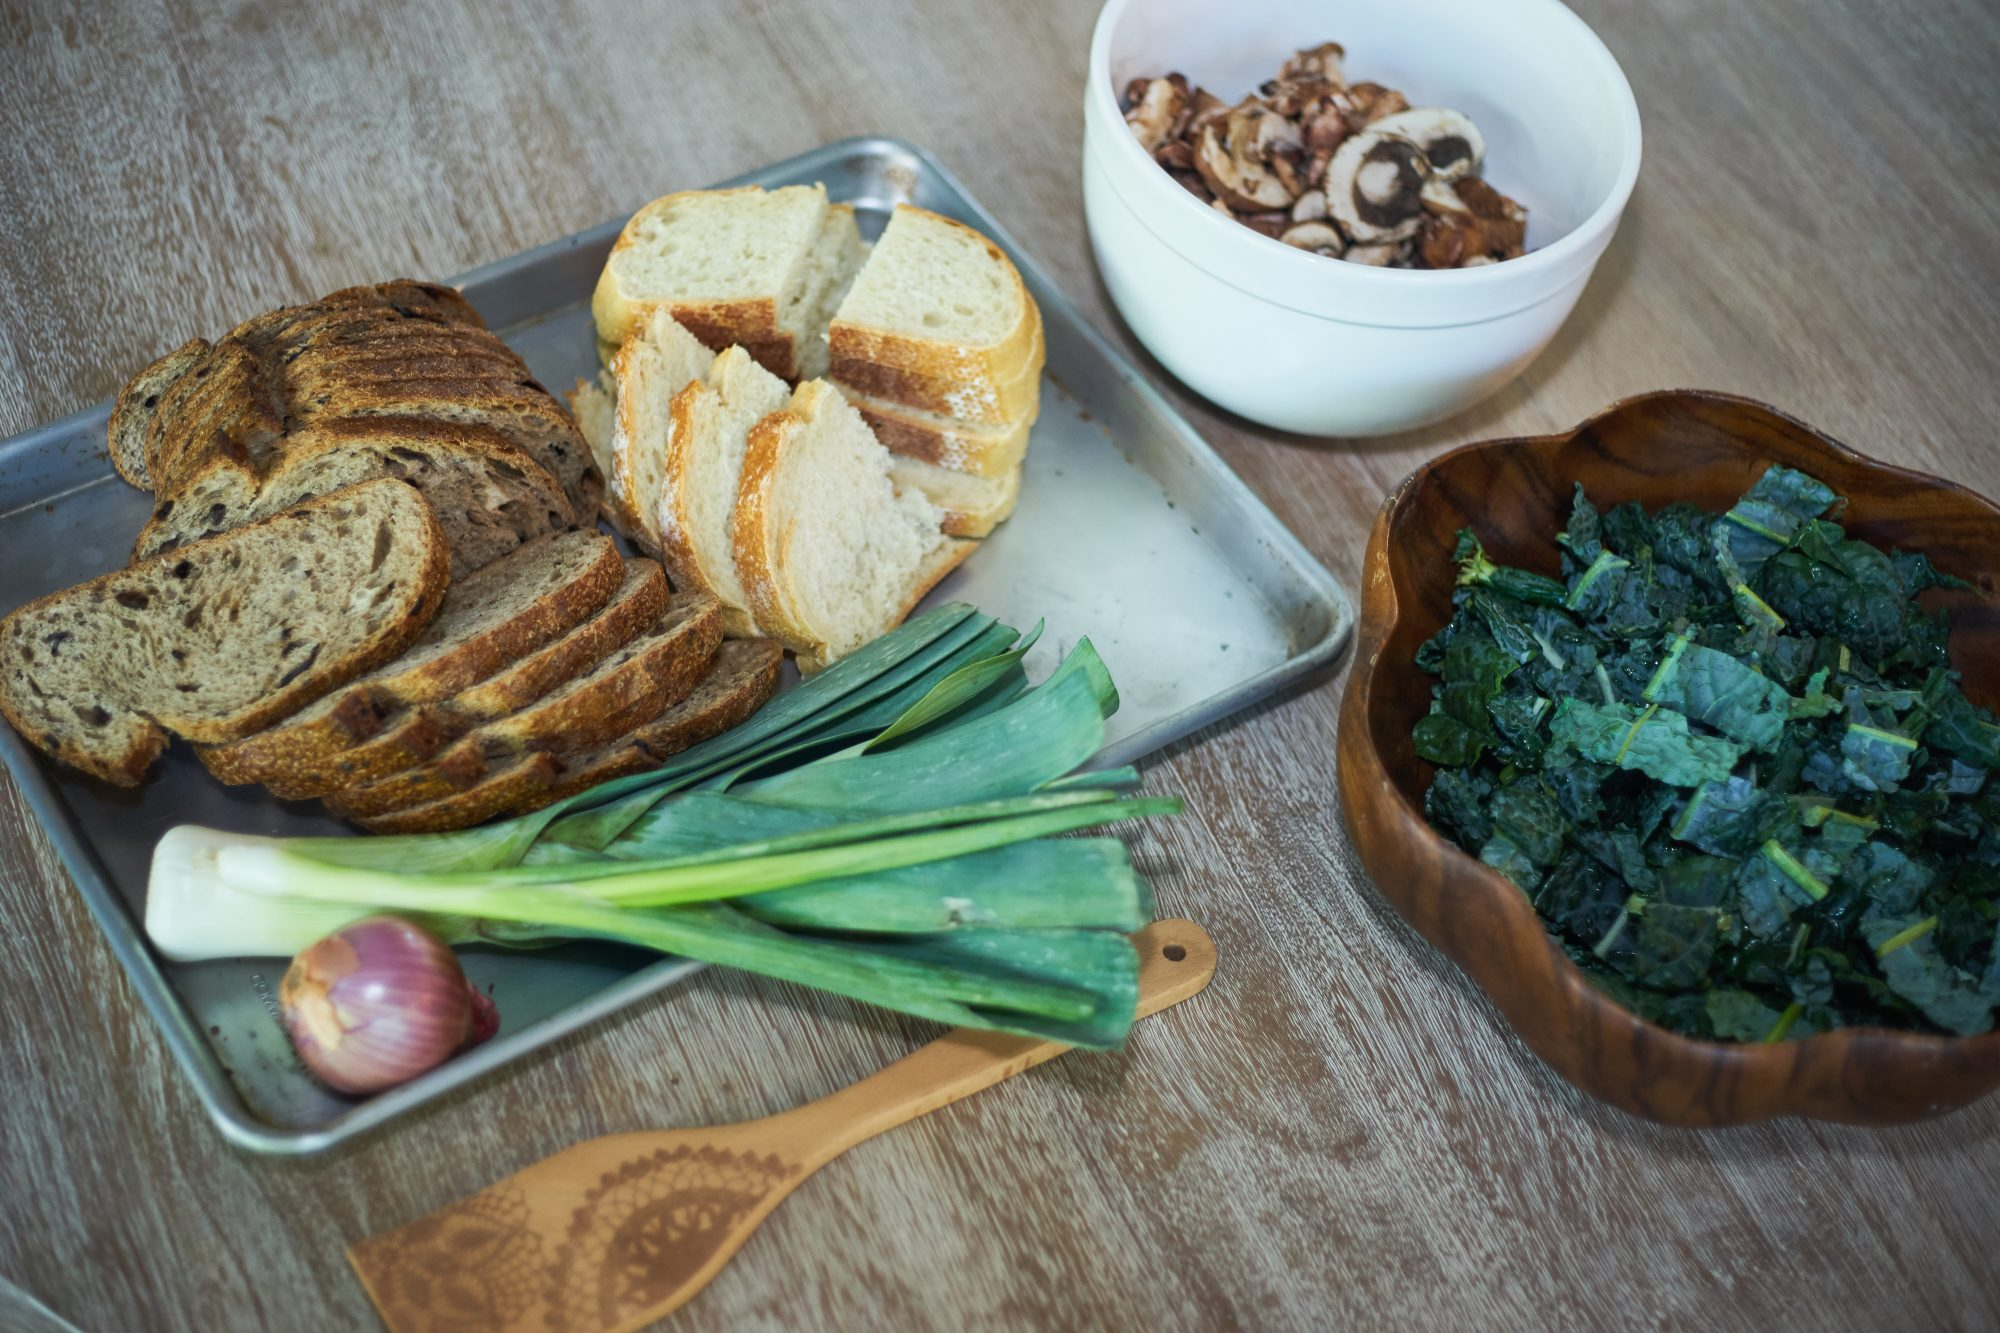 haylie-duff-savory-bread-pudding-ingredients-image